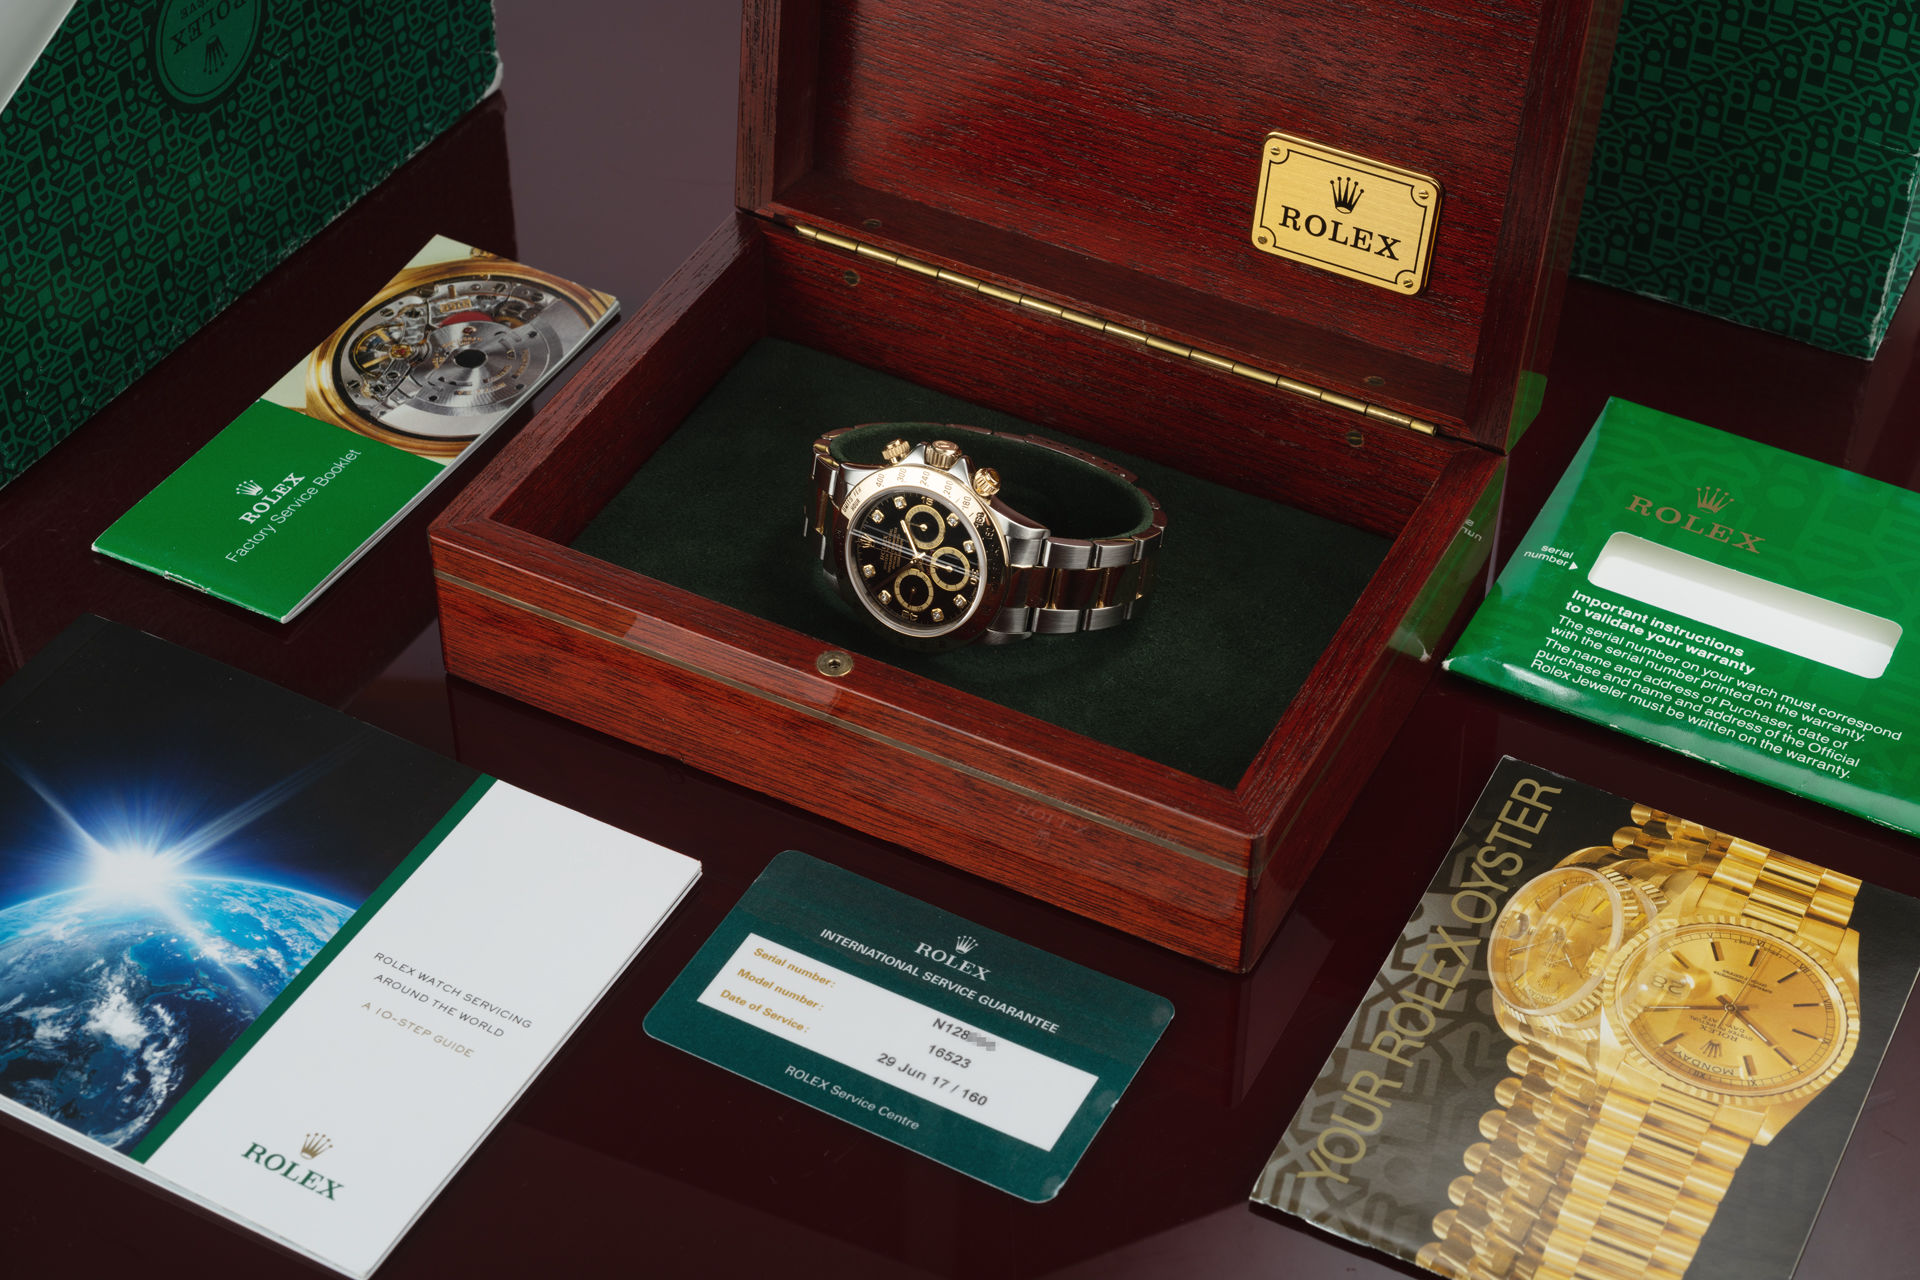 ref 16523 | Gold & Steel 'Upside Down Six' Rolex Warranty | Rolex Cosmograph Daytona